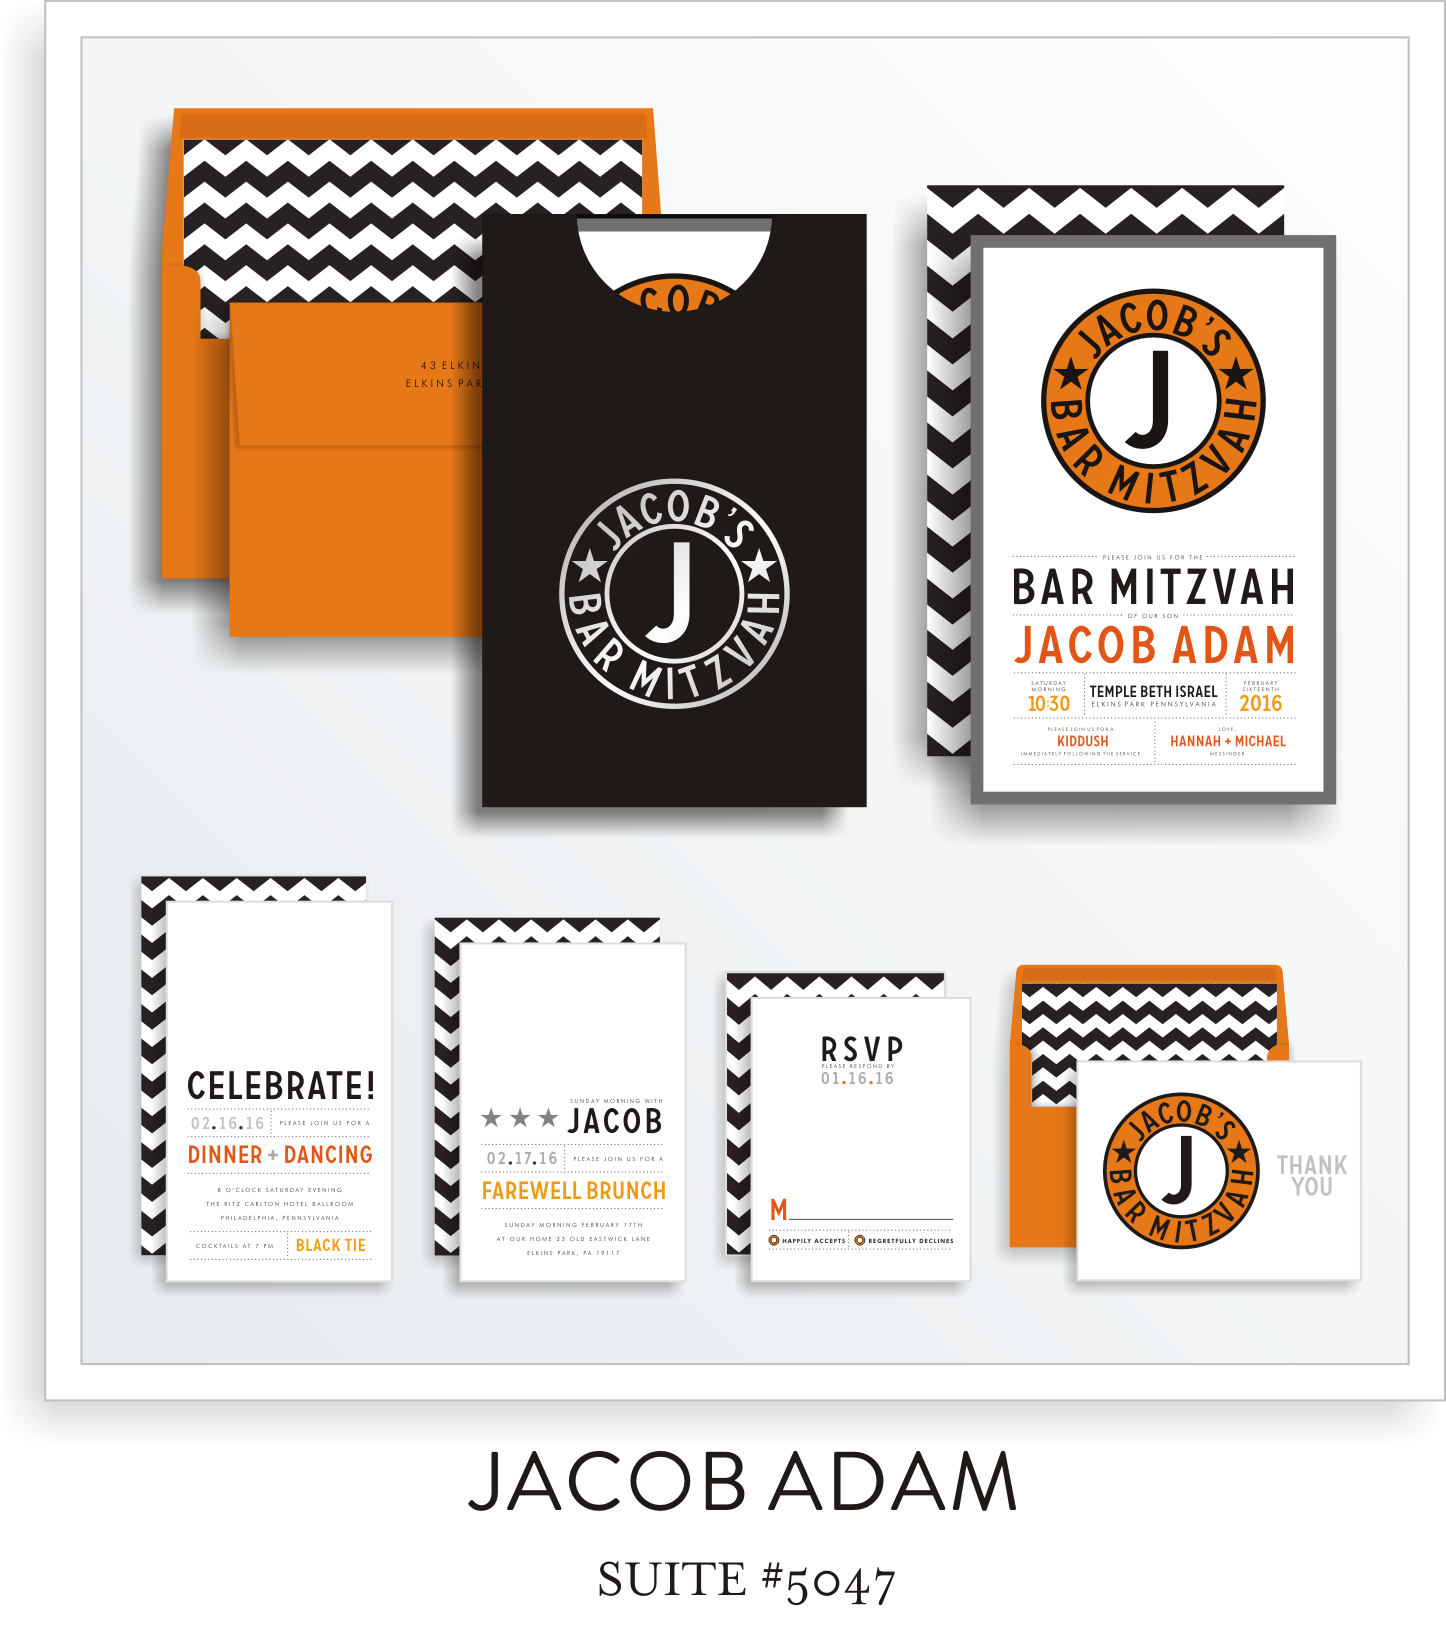 Copy of <a href=/bar-mitzvah-invitations-5047>Suite Details→</a><strong><a href=/jacob-adam-in-colors>see more colors→</a></strong>